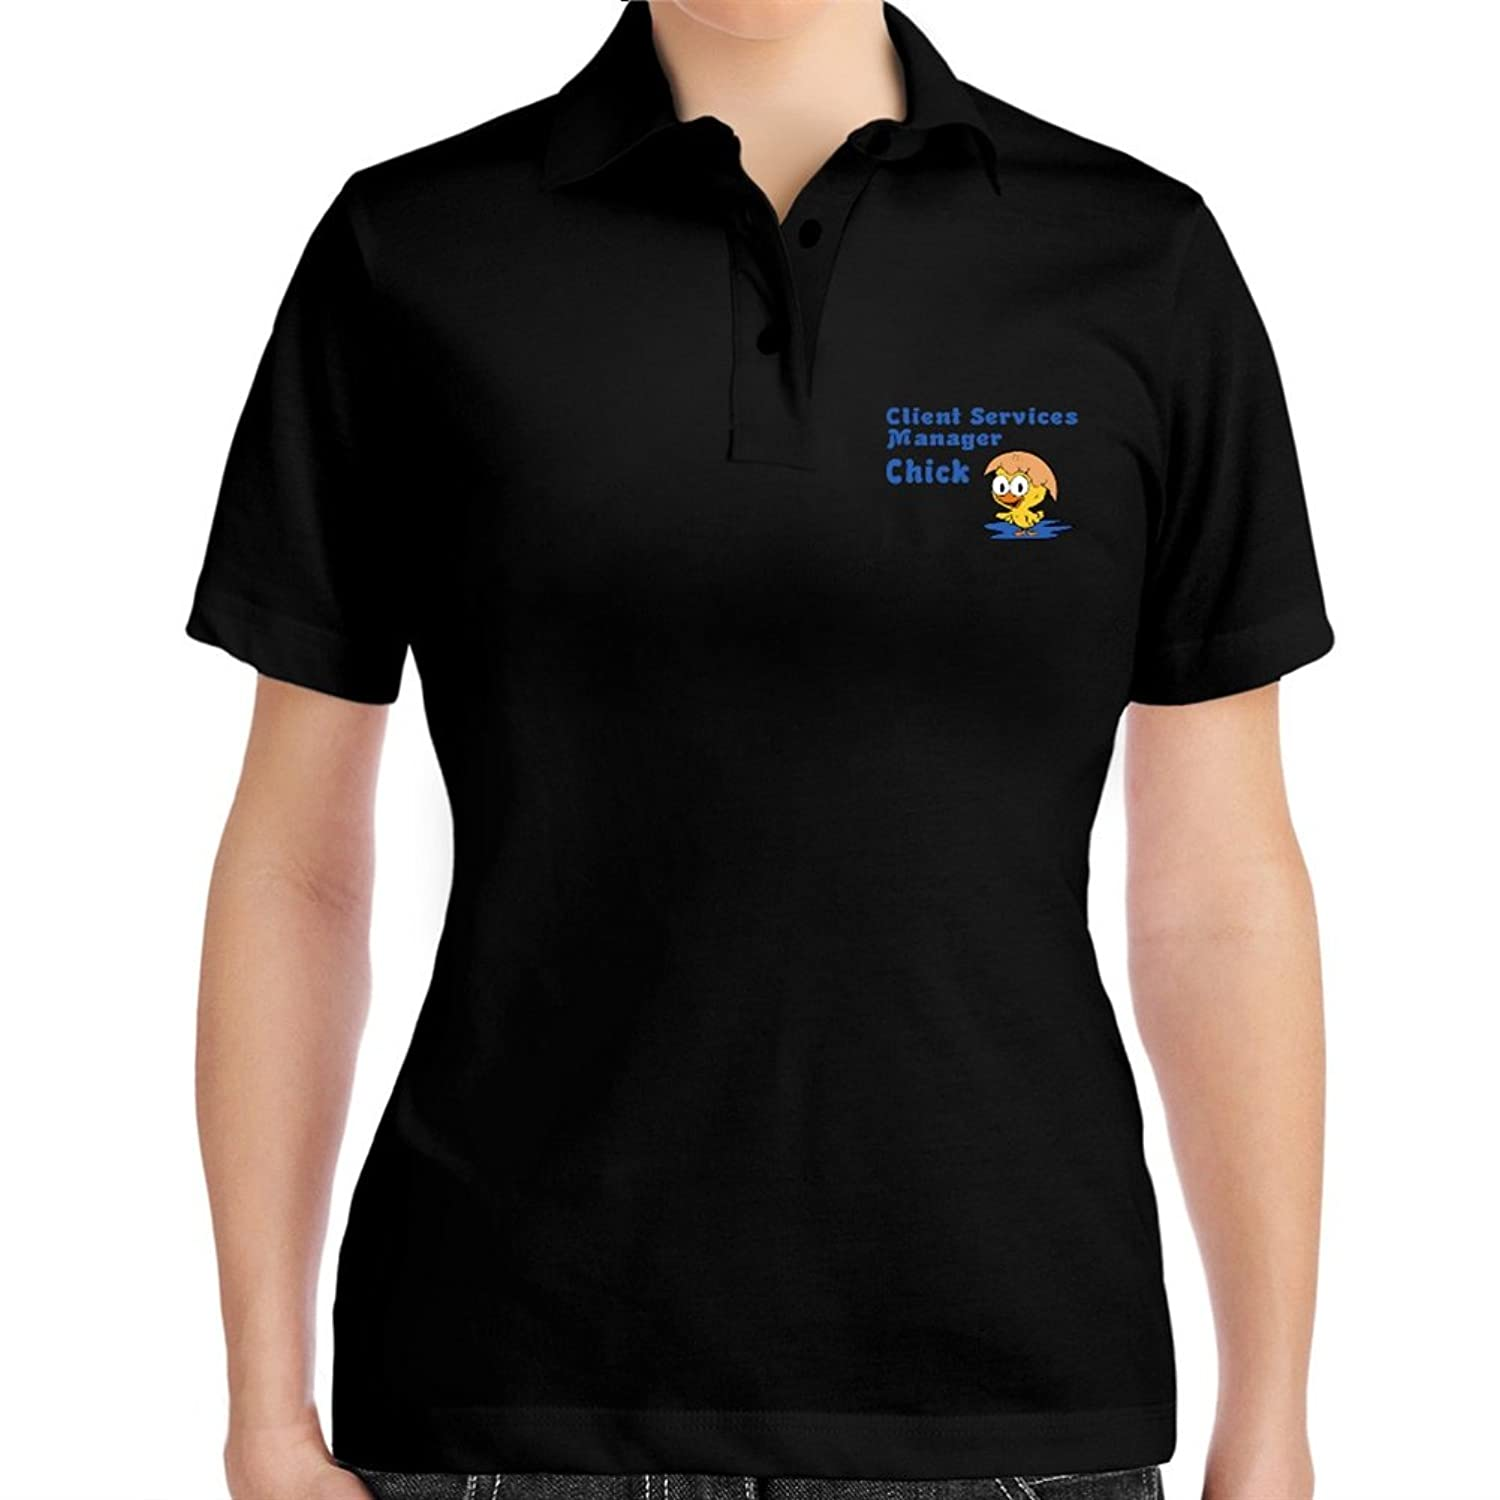 Client Services Manager chick Women Polo Shirt